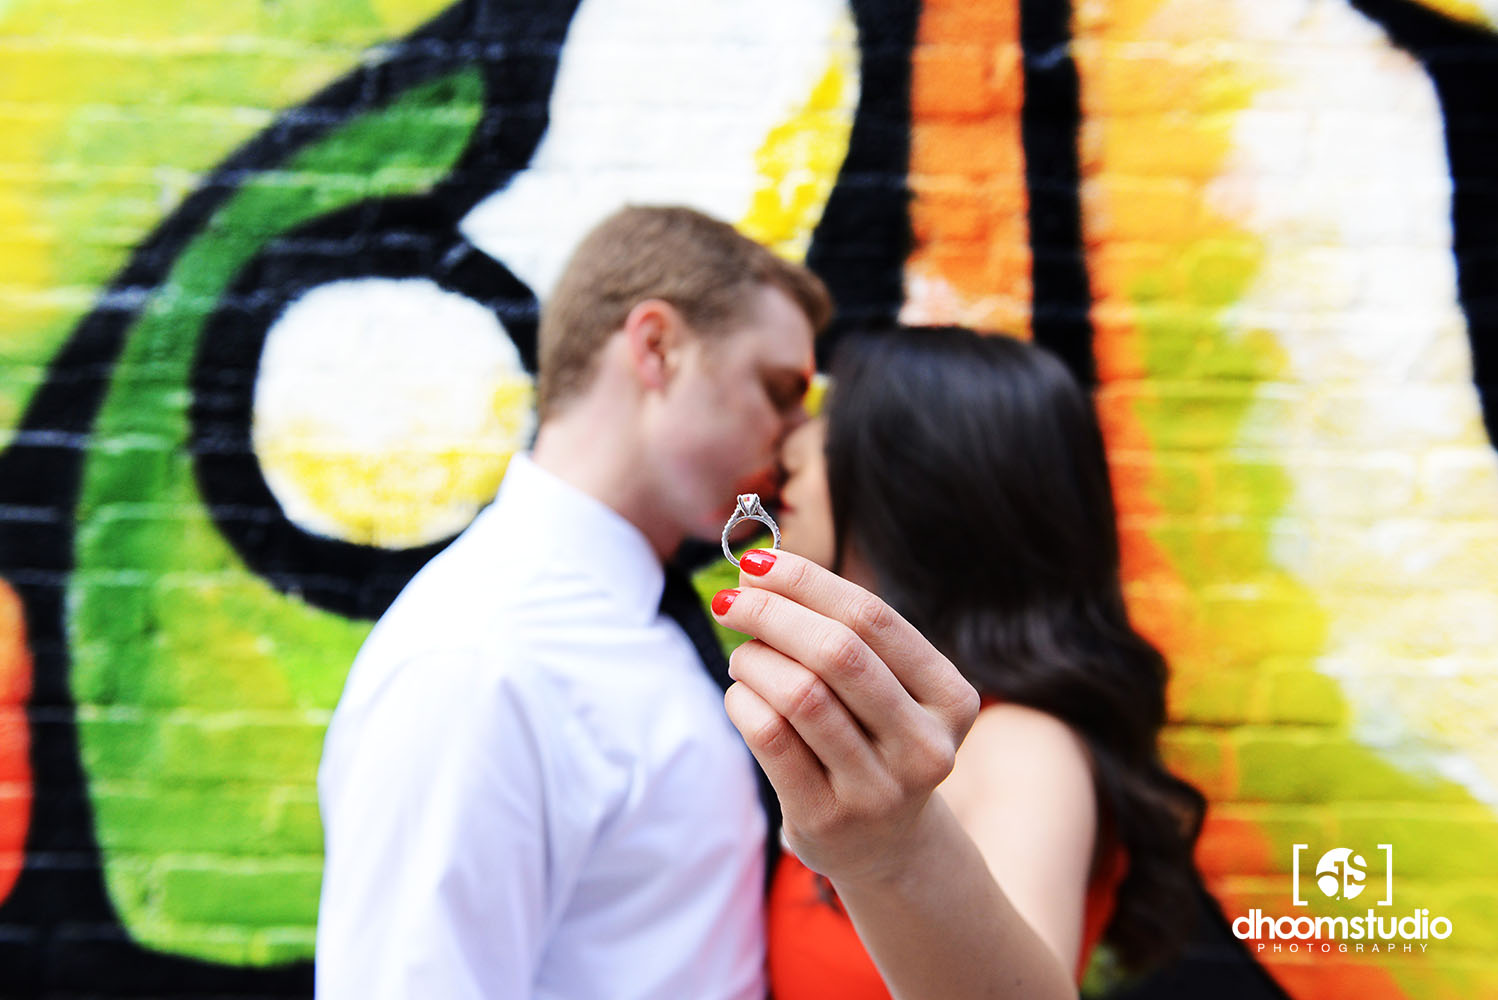 Cristina + Joshua Engagement Session | New York City, NY | 01.19.13